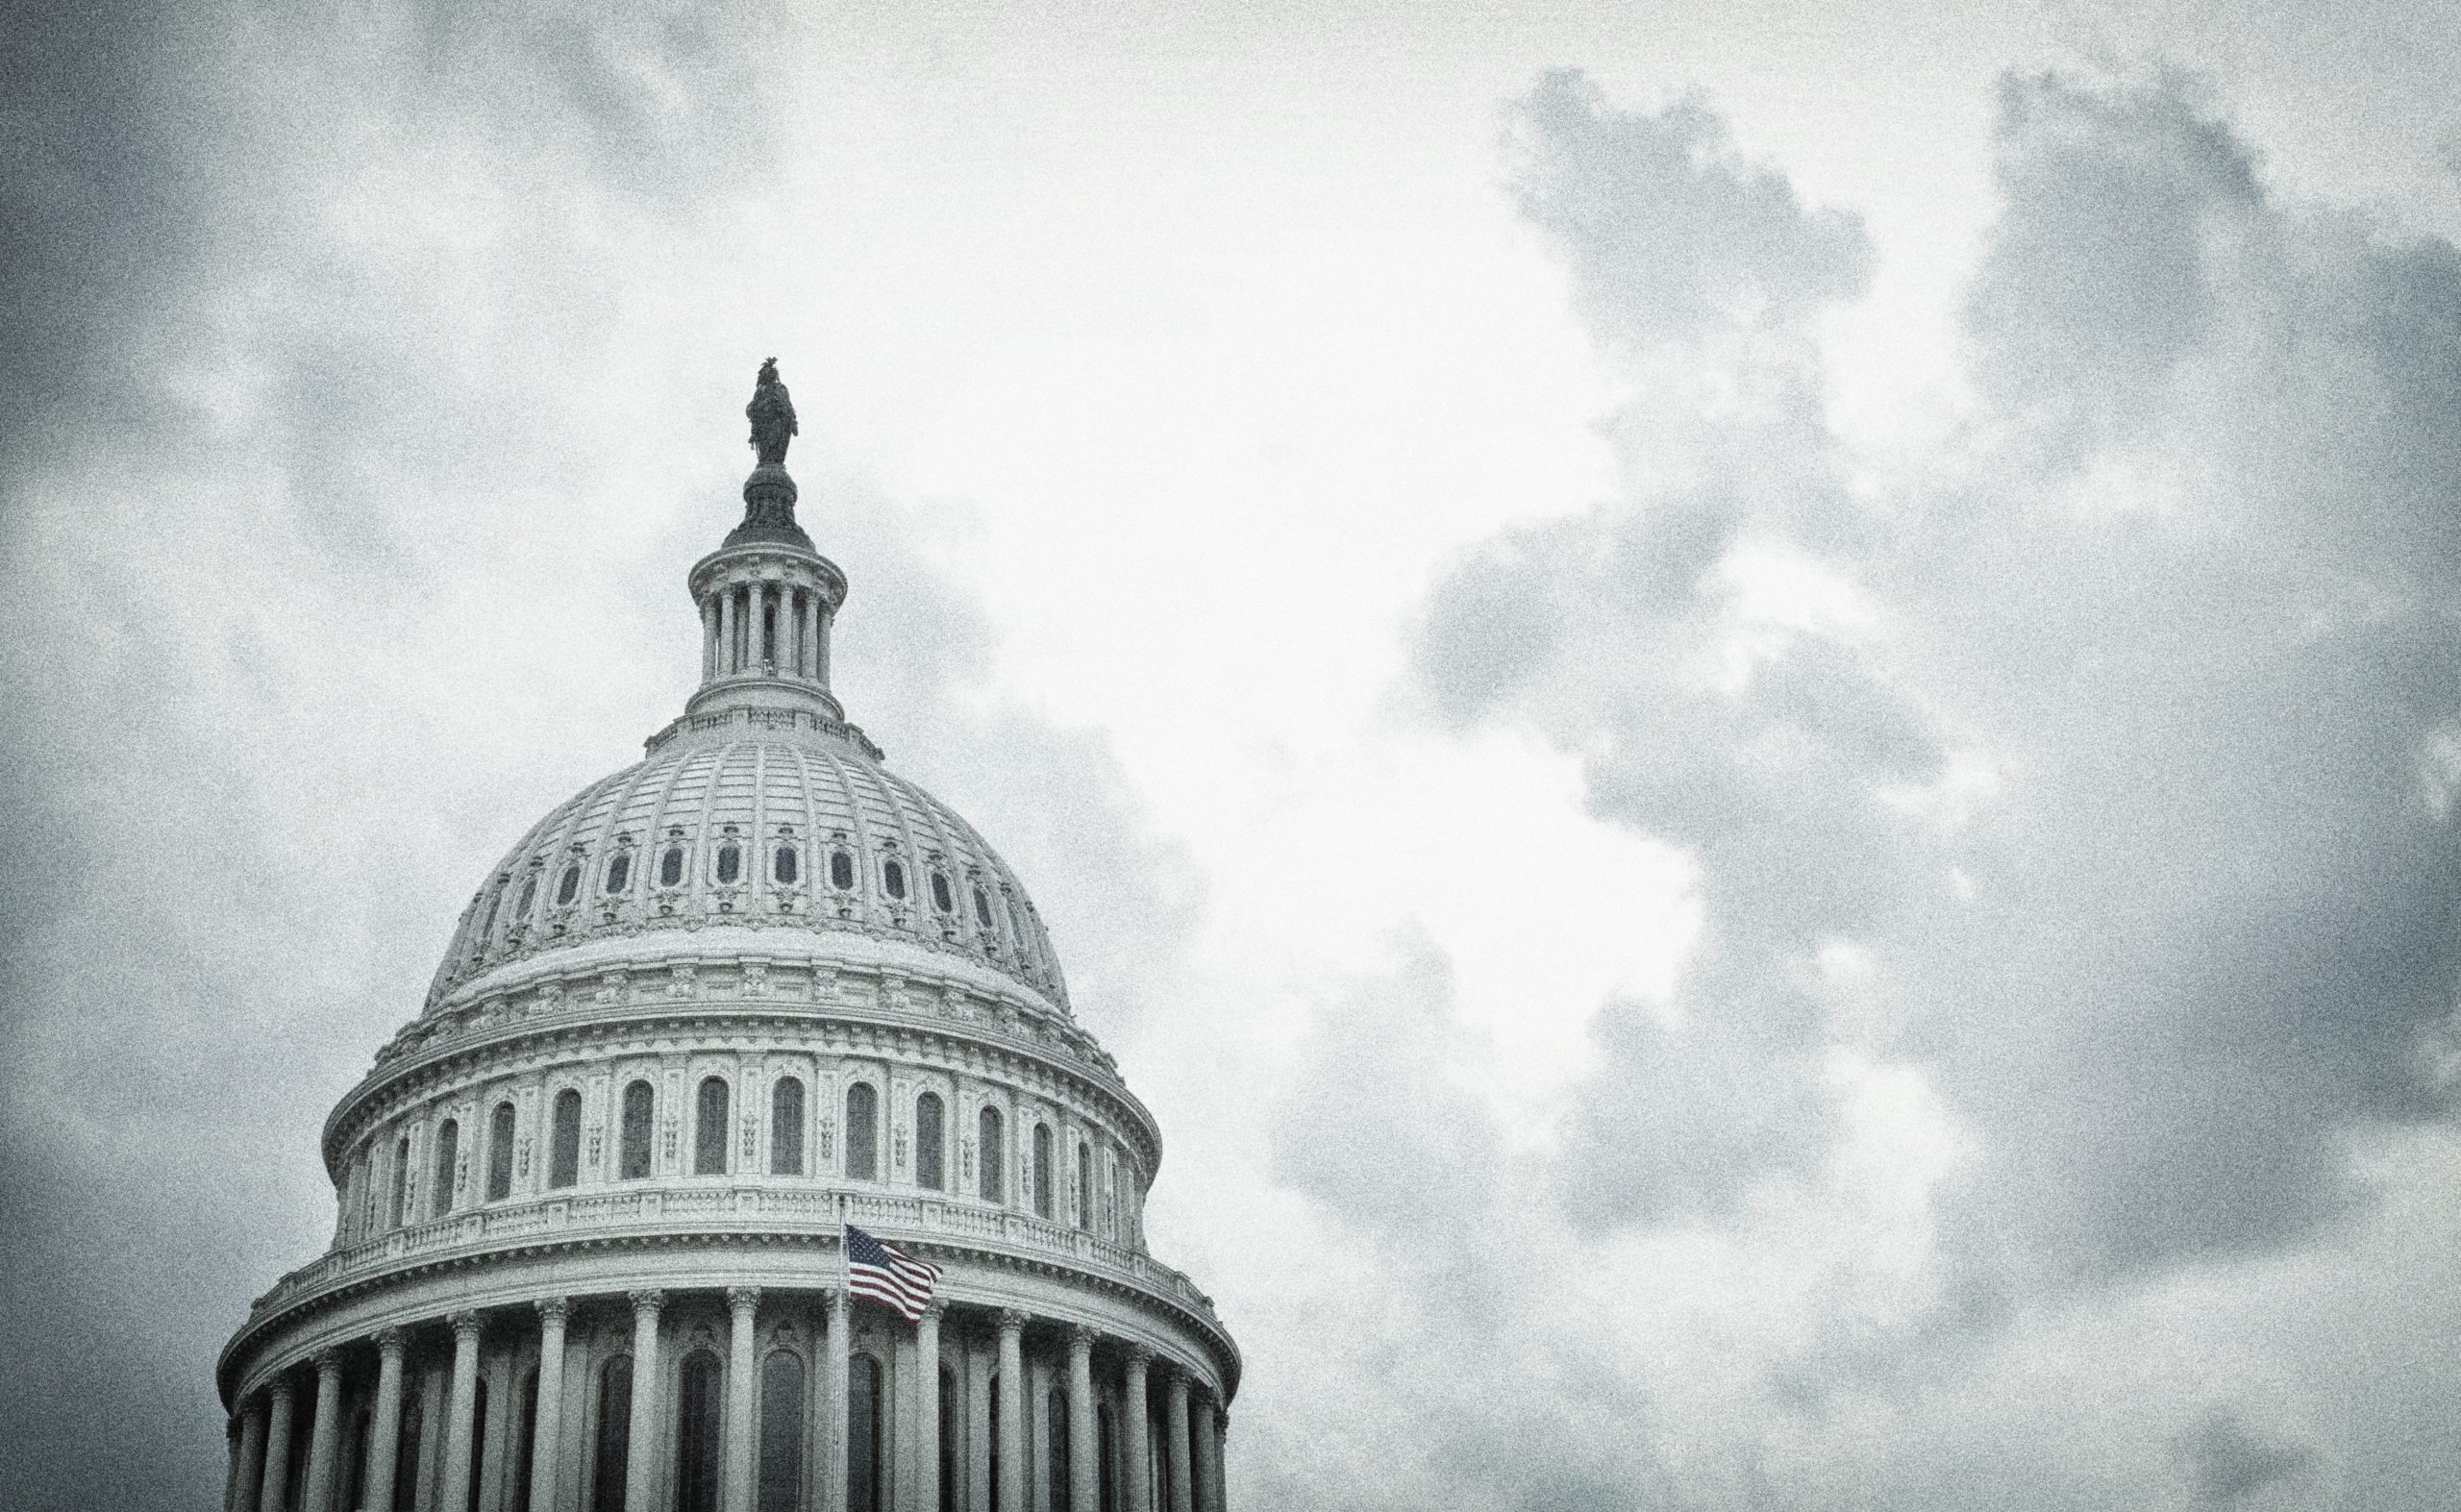 Textured image of the United States Capitol dome on cloudy day